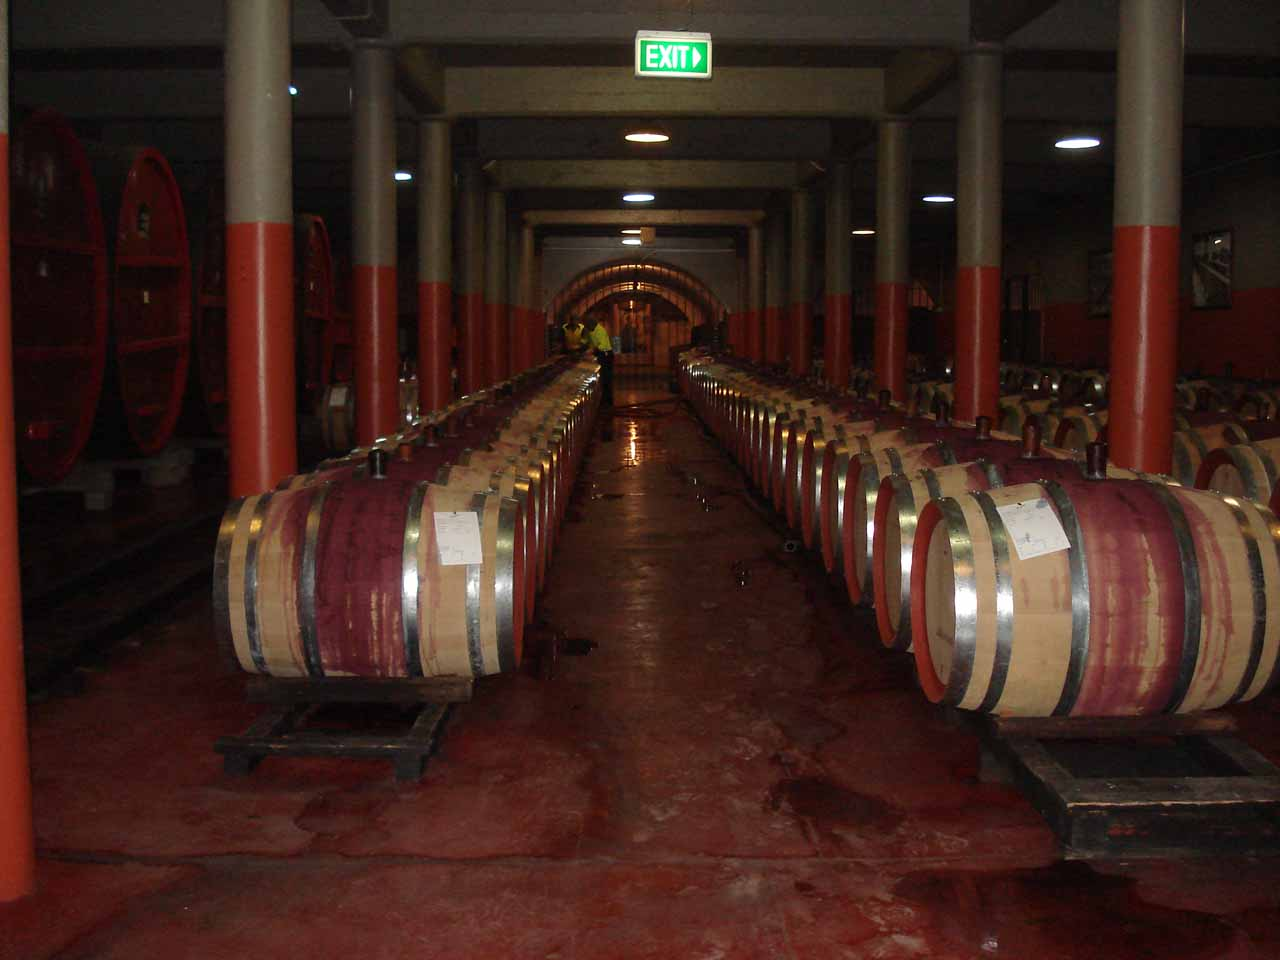 Adelaide was in reach of the Barossa Valley (known for wineries), but we didn't have to go that far for a wine tasting and tour at the Magill Estate (in Adelaide itself) for the Penfold's wine brand